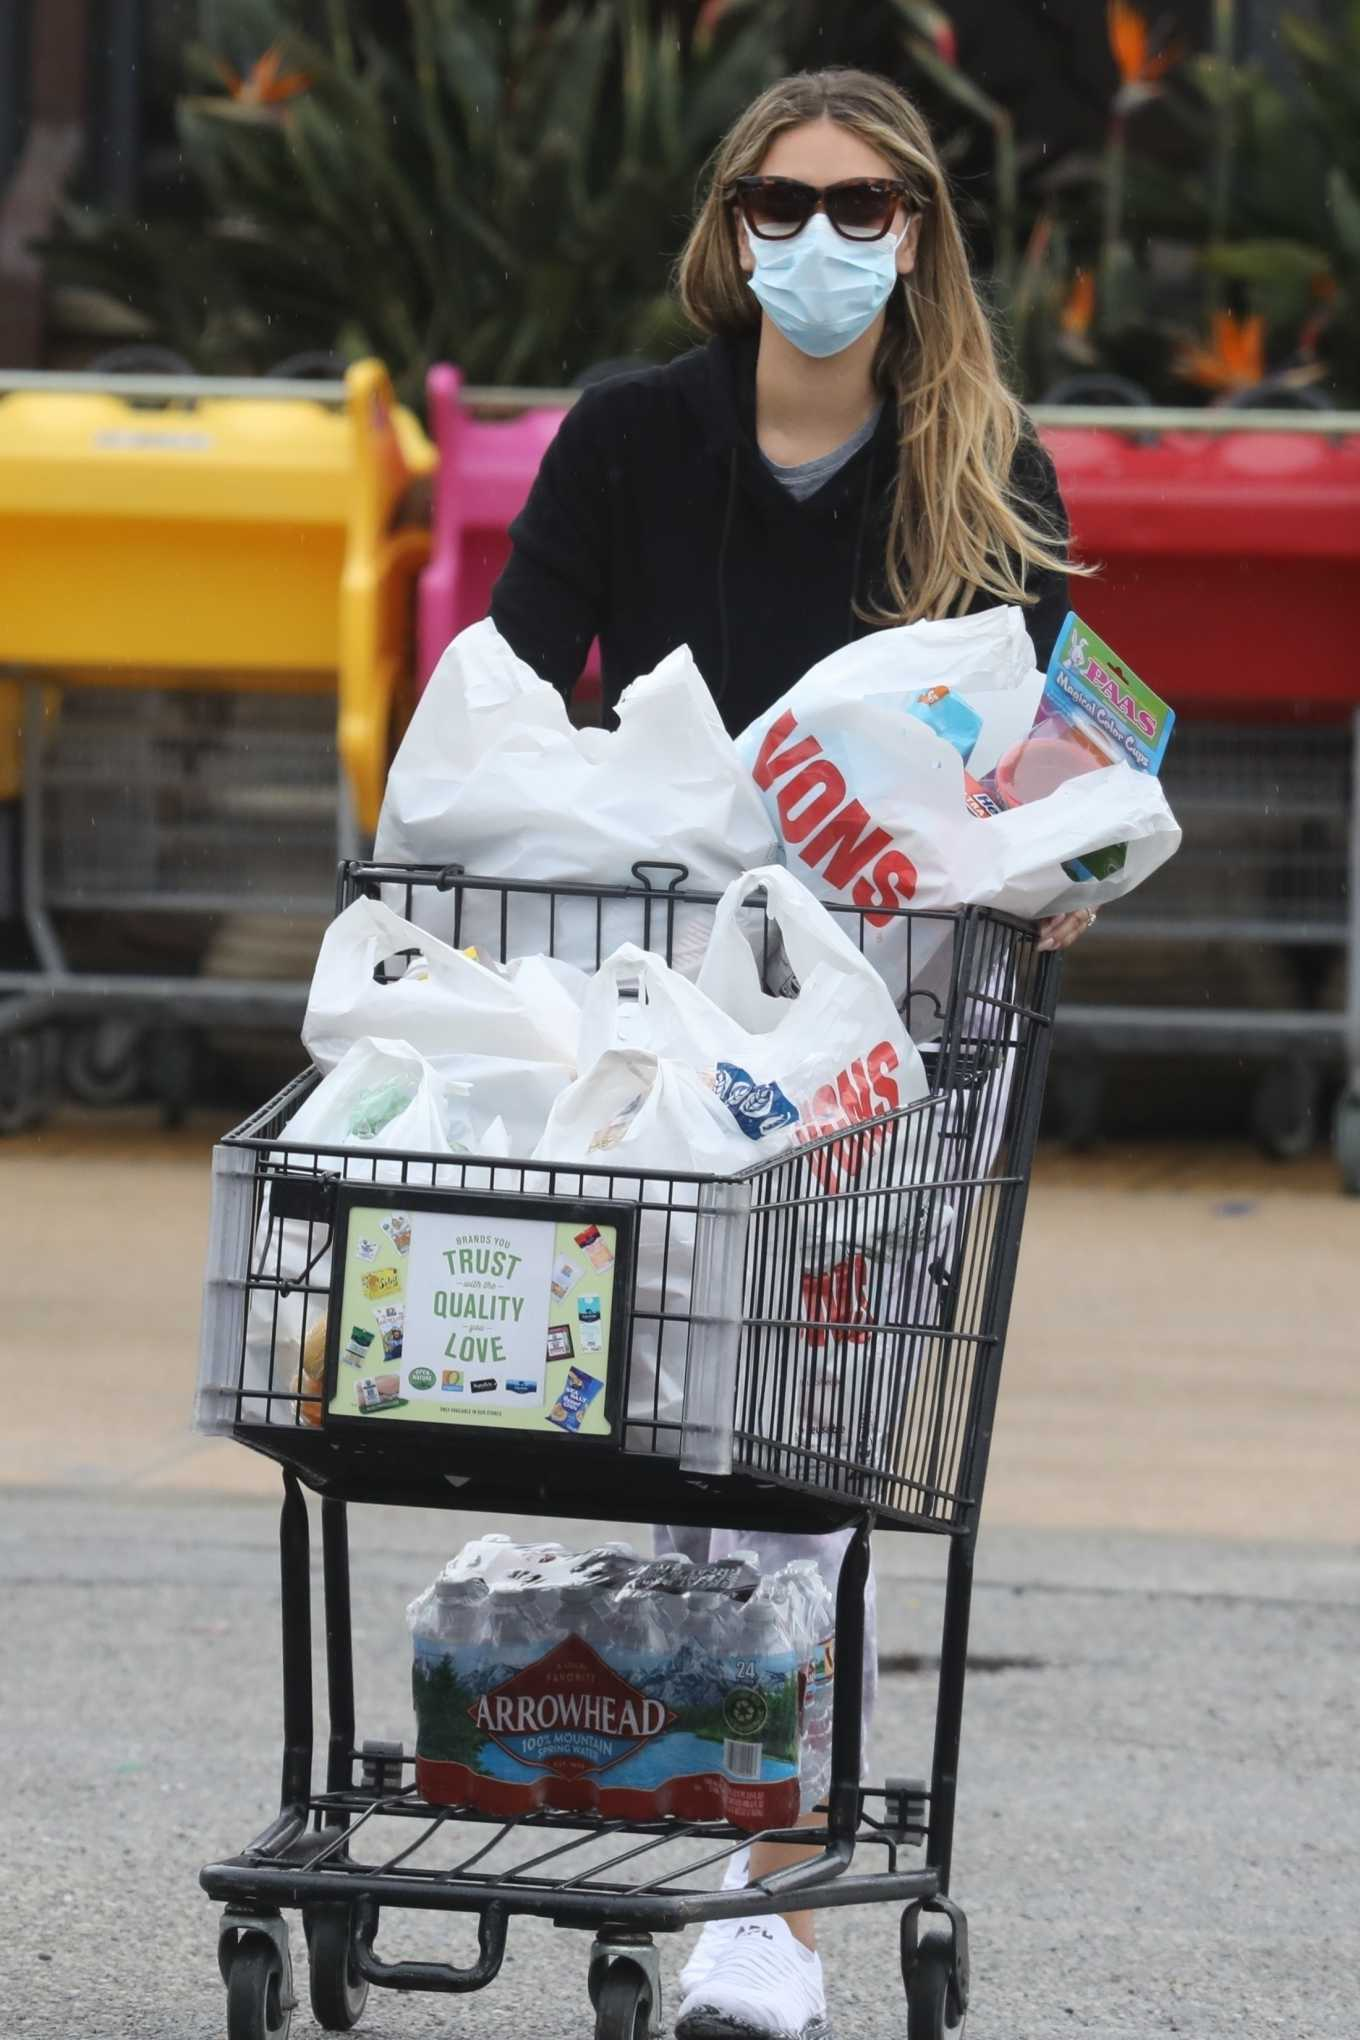 April Love Geary Shopping candids at supermarket